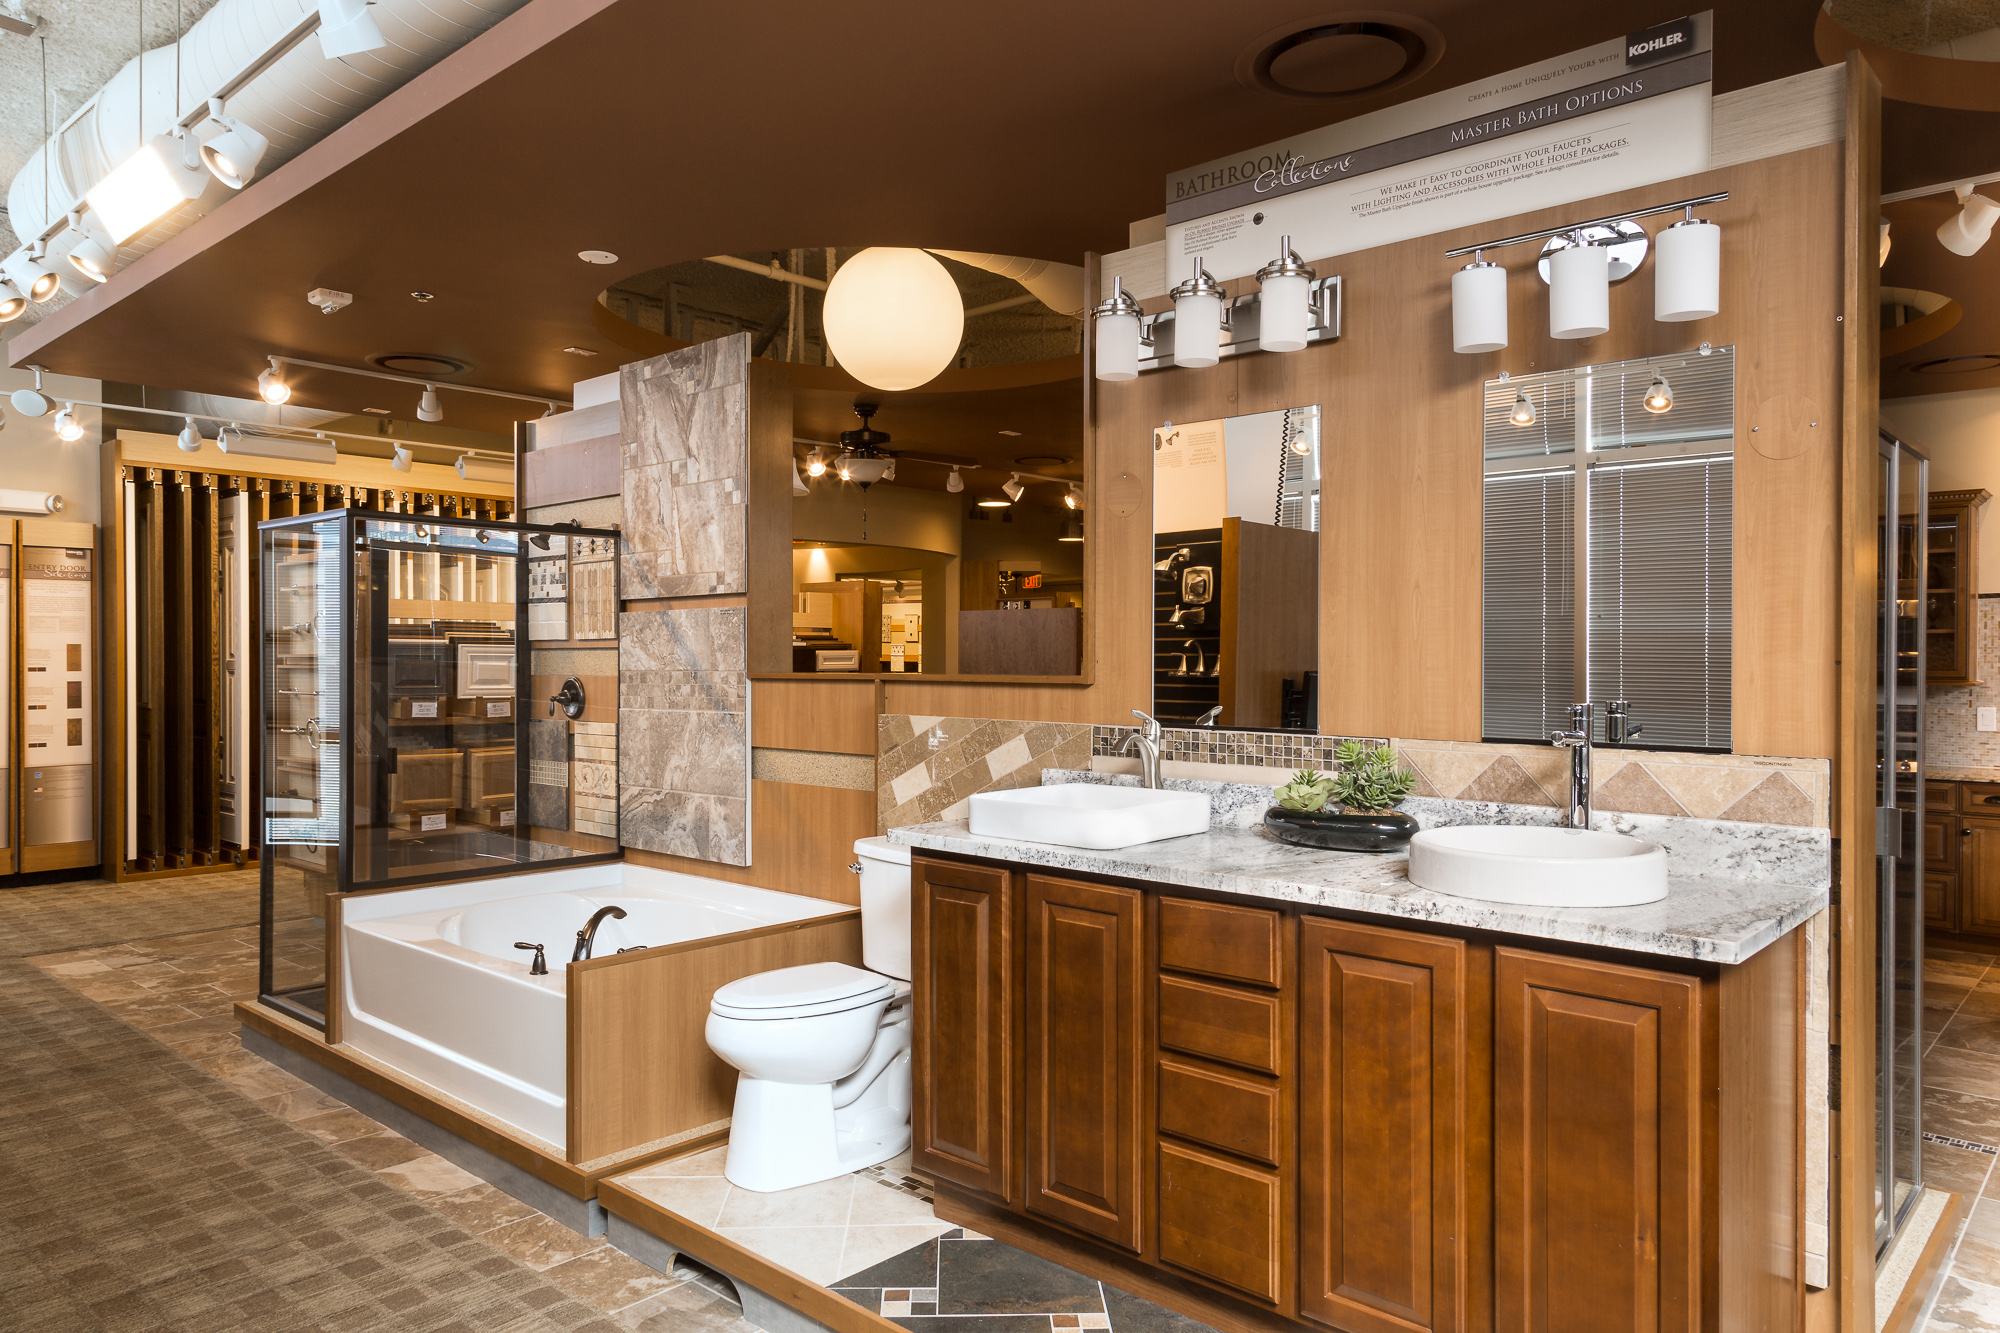 home design center. Pulte Home Expressions Studio Design Center  AZ Interior